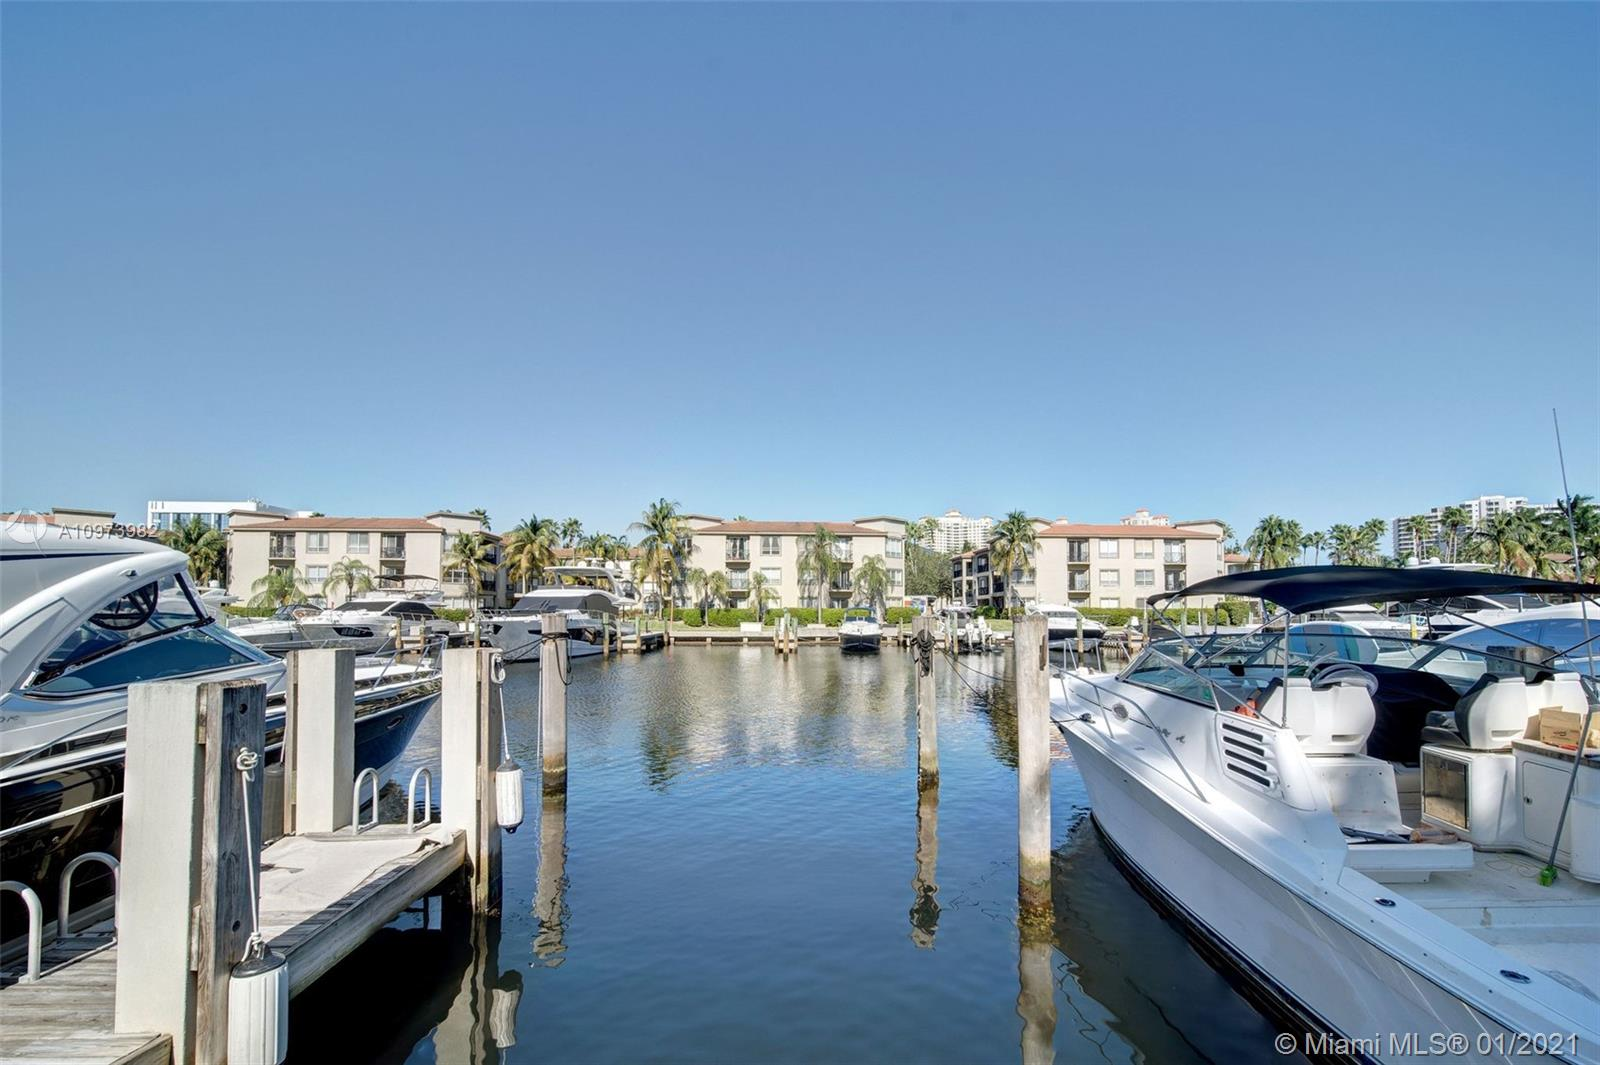 Uptown Marina Lofts - 3029 NE 188th St, Aventura, FL 33180